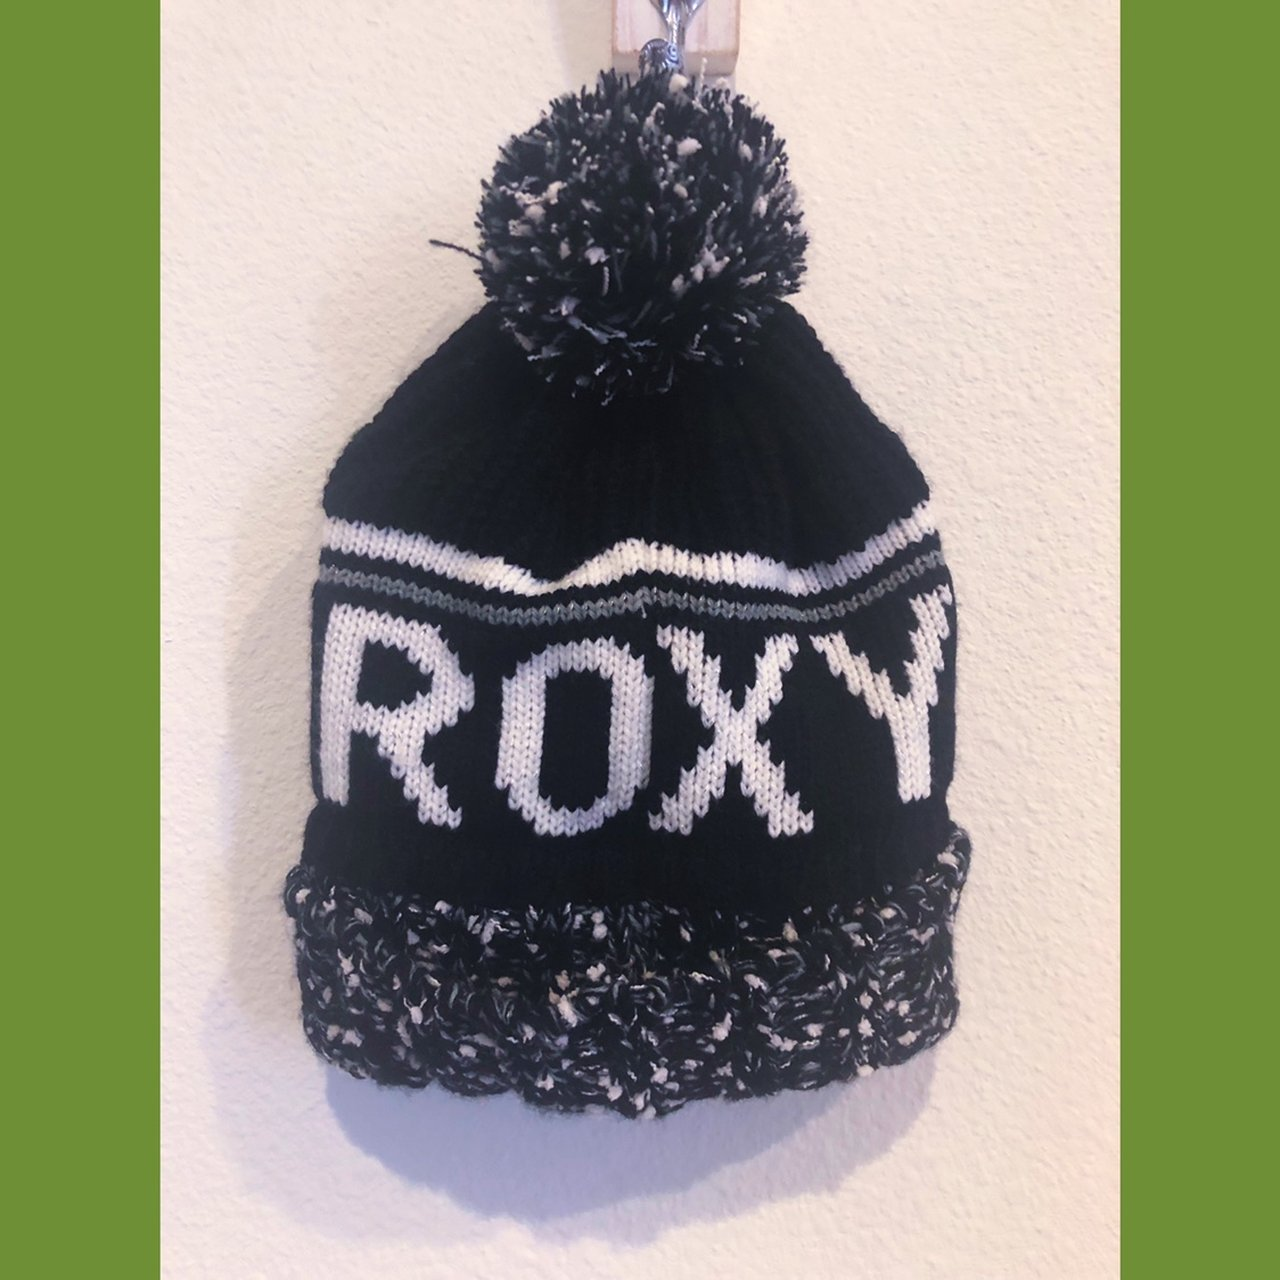 9bfa2e8f53d Winter hat with tag on. Black grey with white logo text on. - Depop